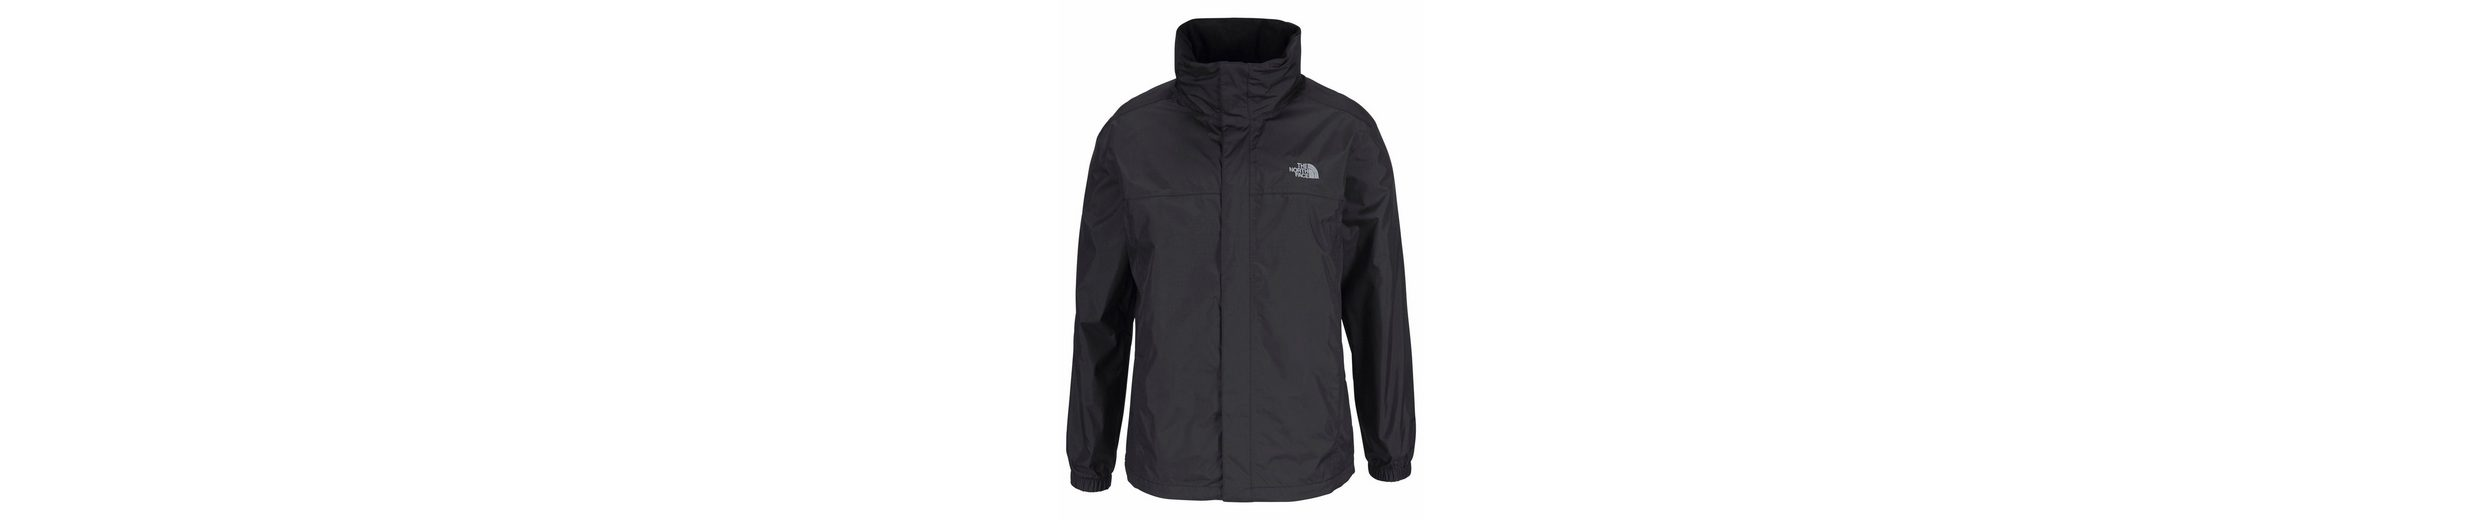 The North Face Funktionsjacke RESOLVE 2, mit wasserdichtem Obermaterial